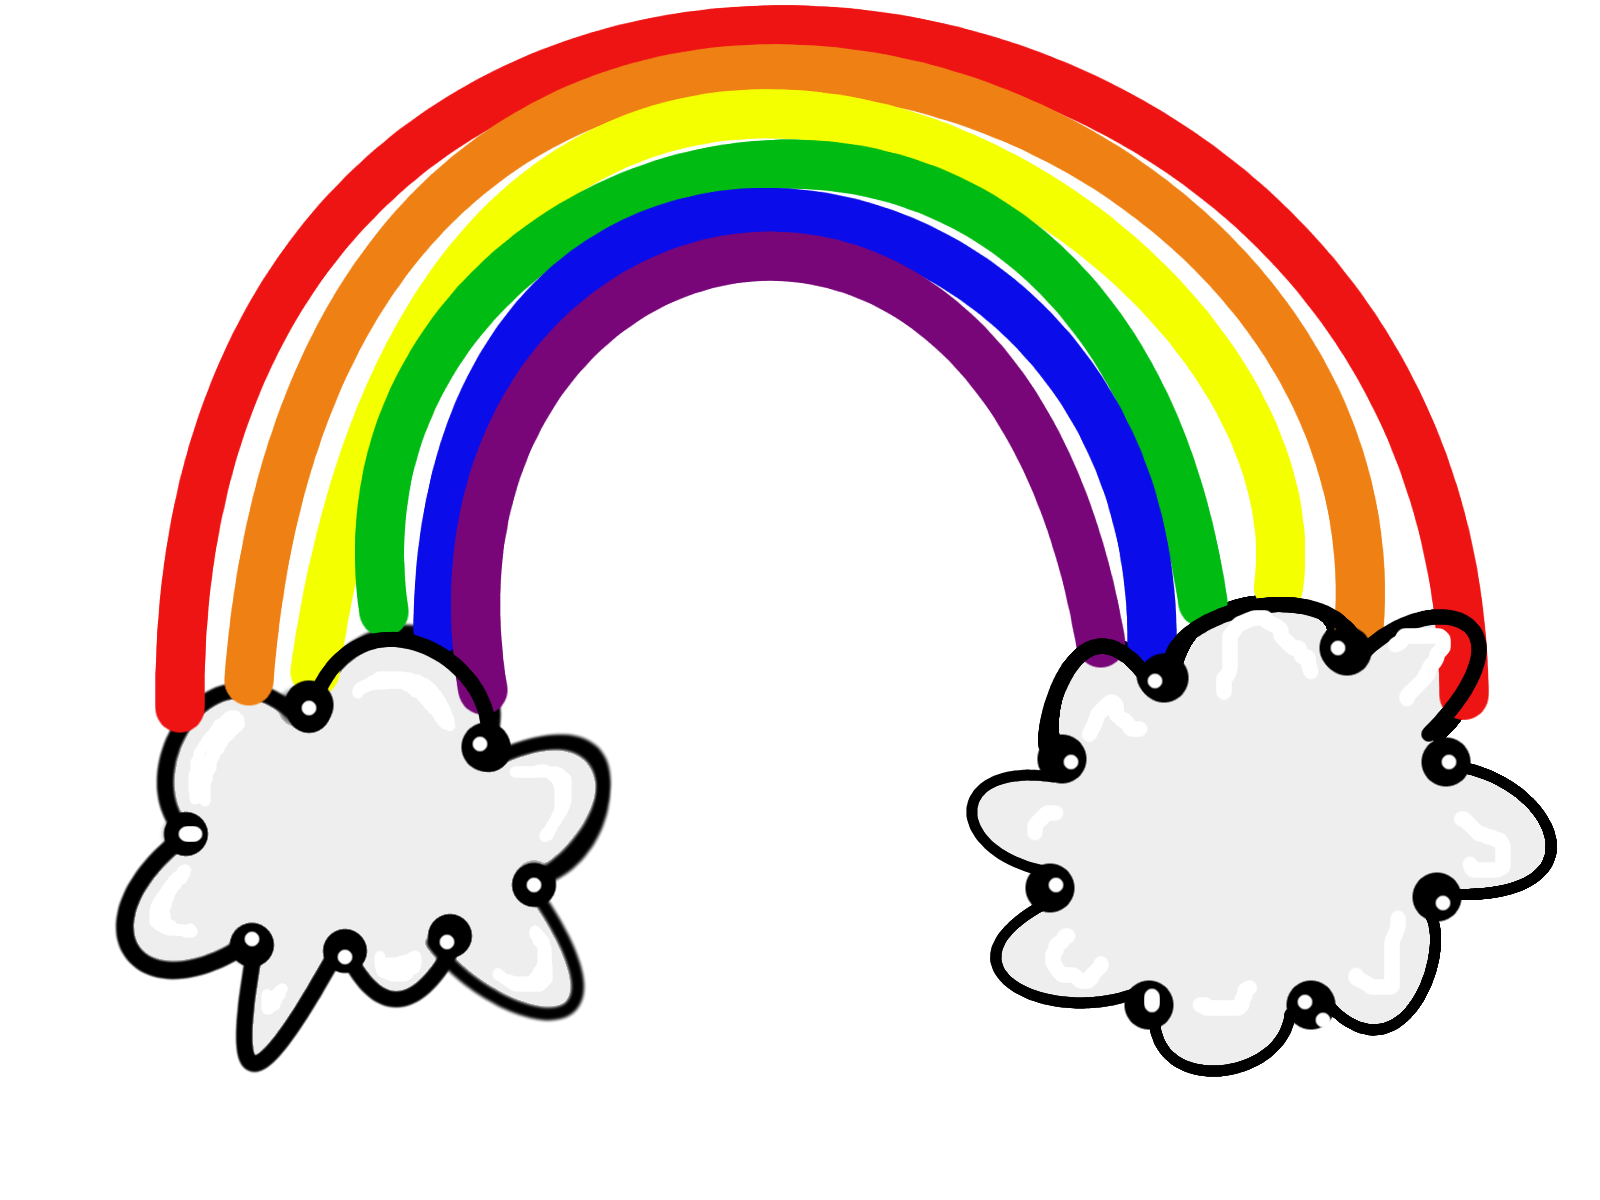 Rainbow clipart Images Kids Free Rainbow For